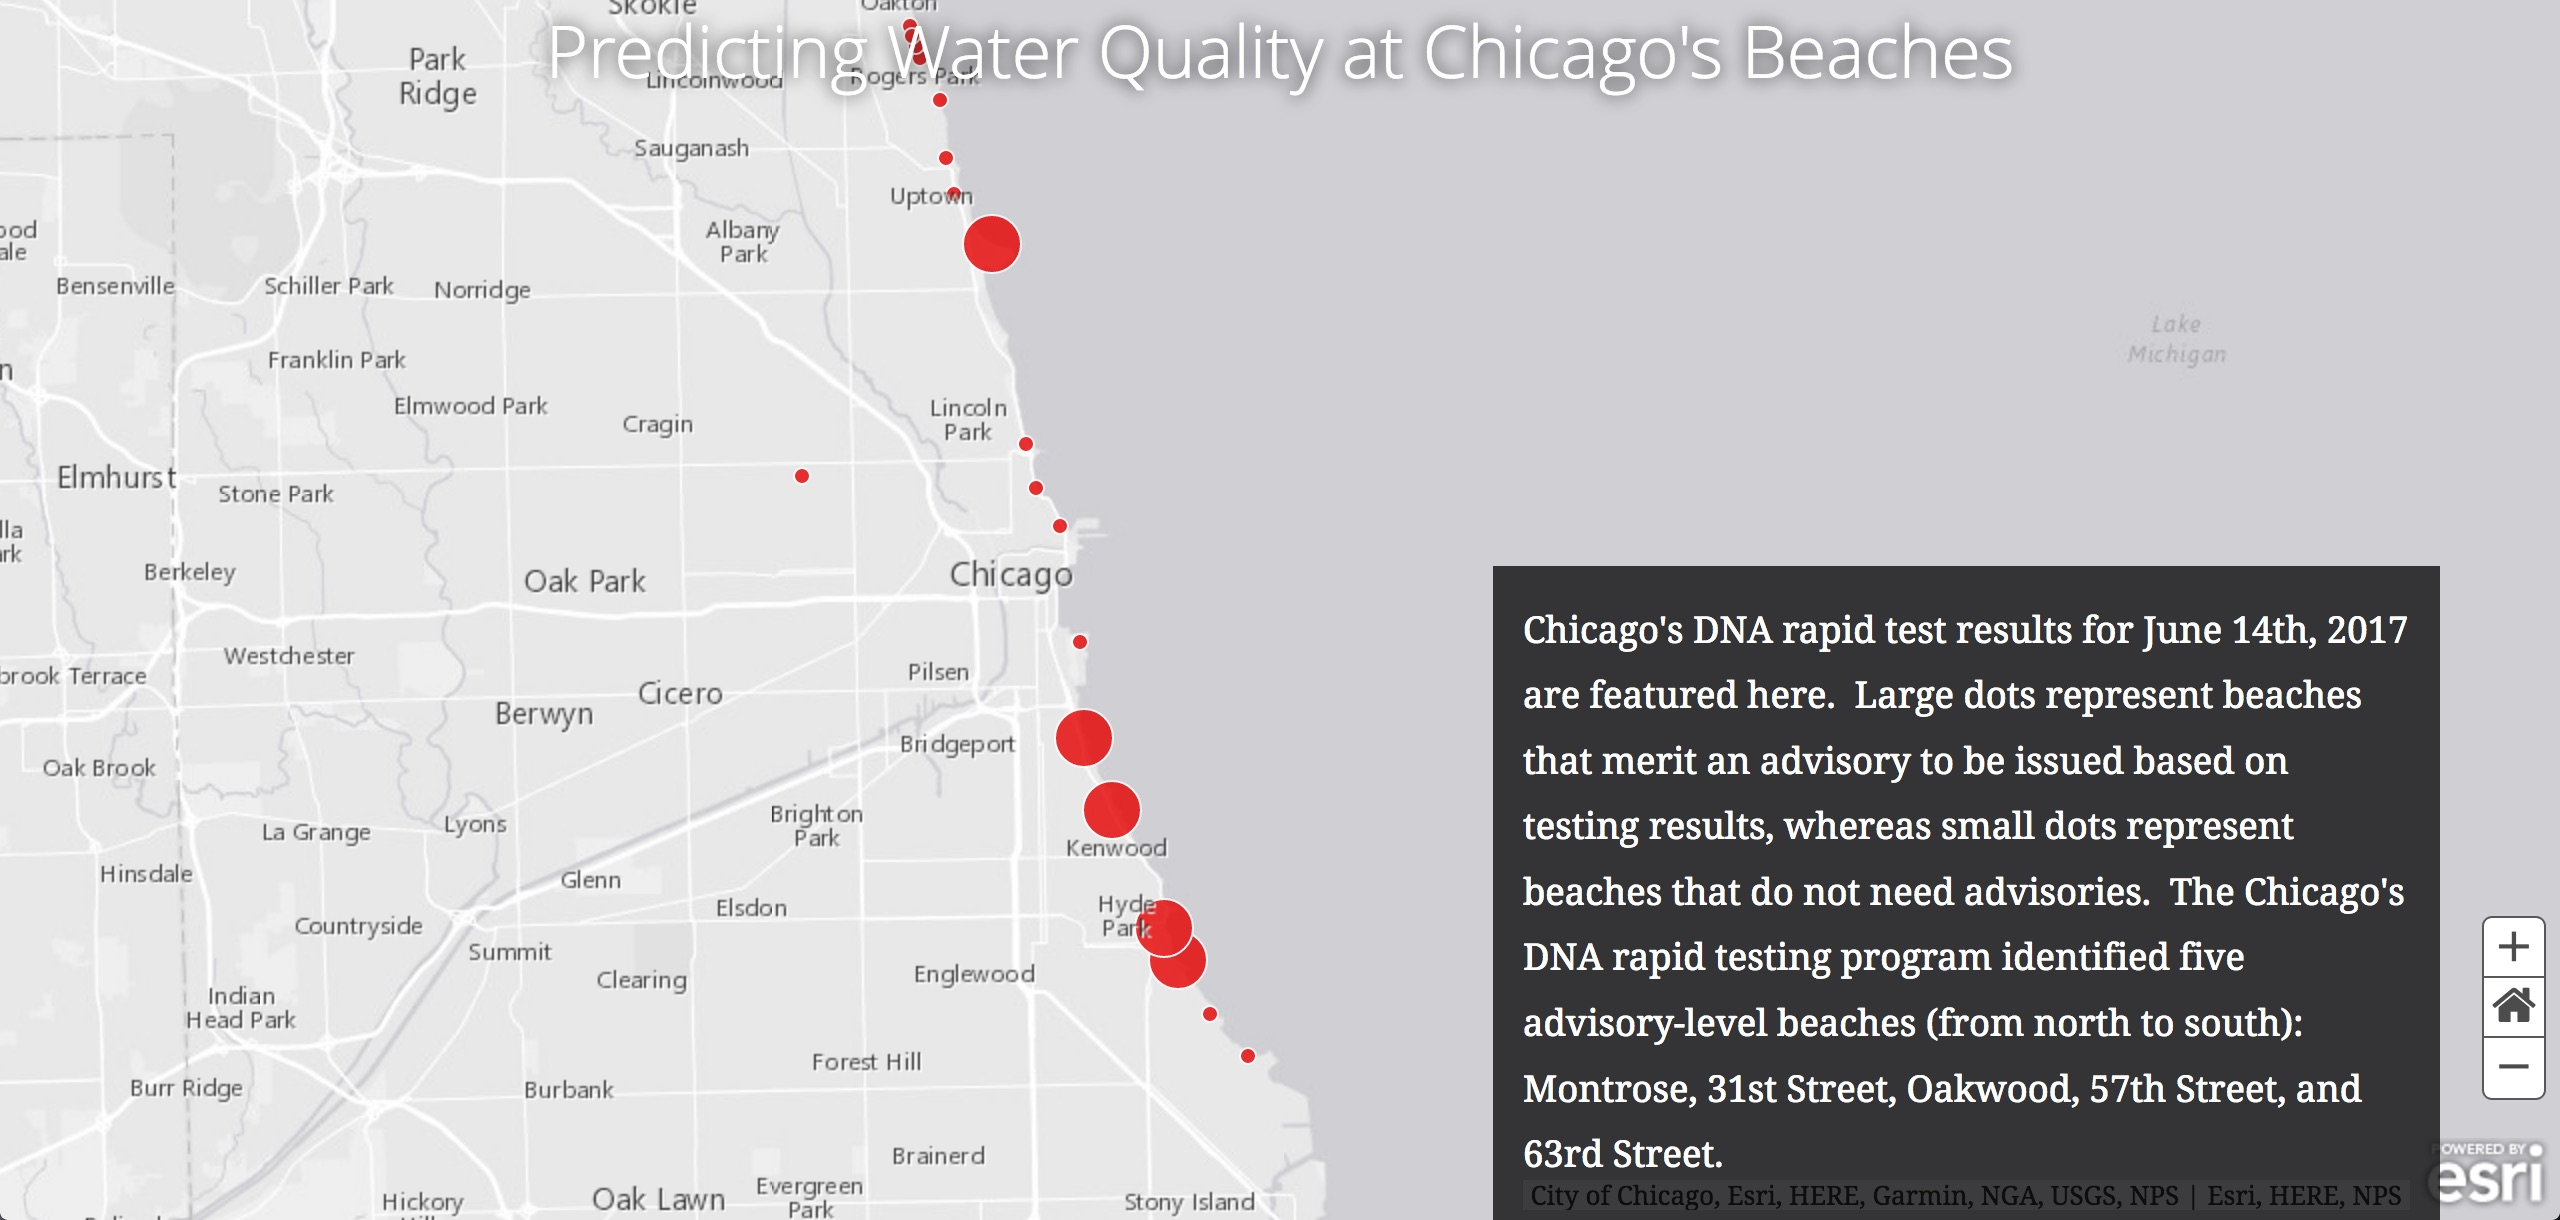 Predicting Water Quality at Chicago's Beaches